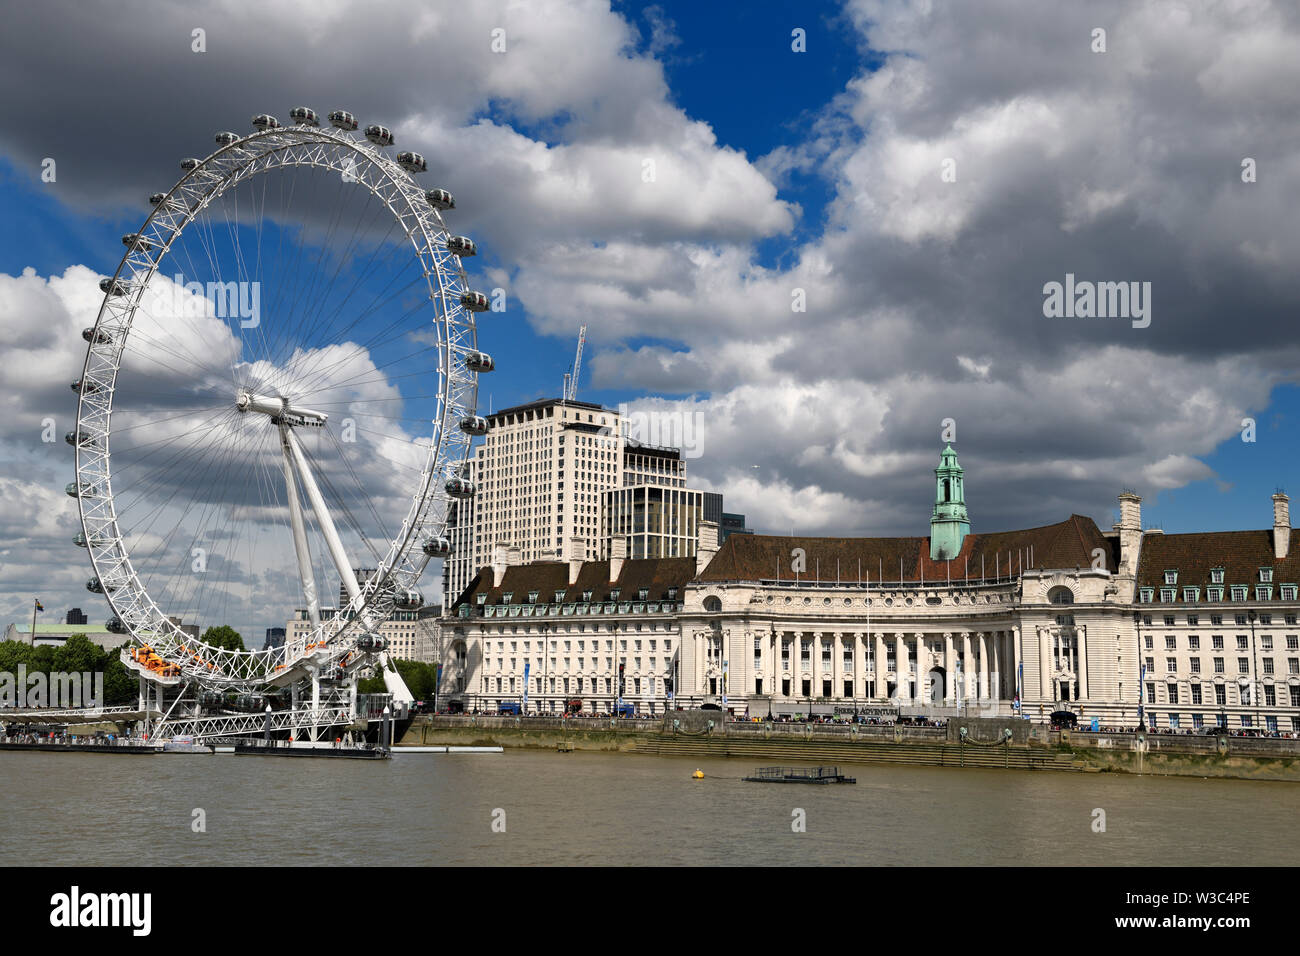 London Eye on the River Thames with tourists lined up at Shrek's adventure and Sea Life Centre Aquarium London England - Stock Image